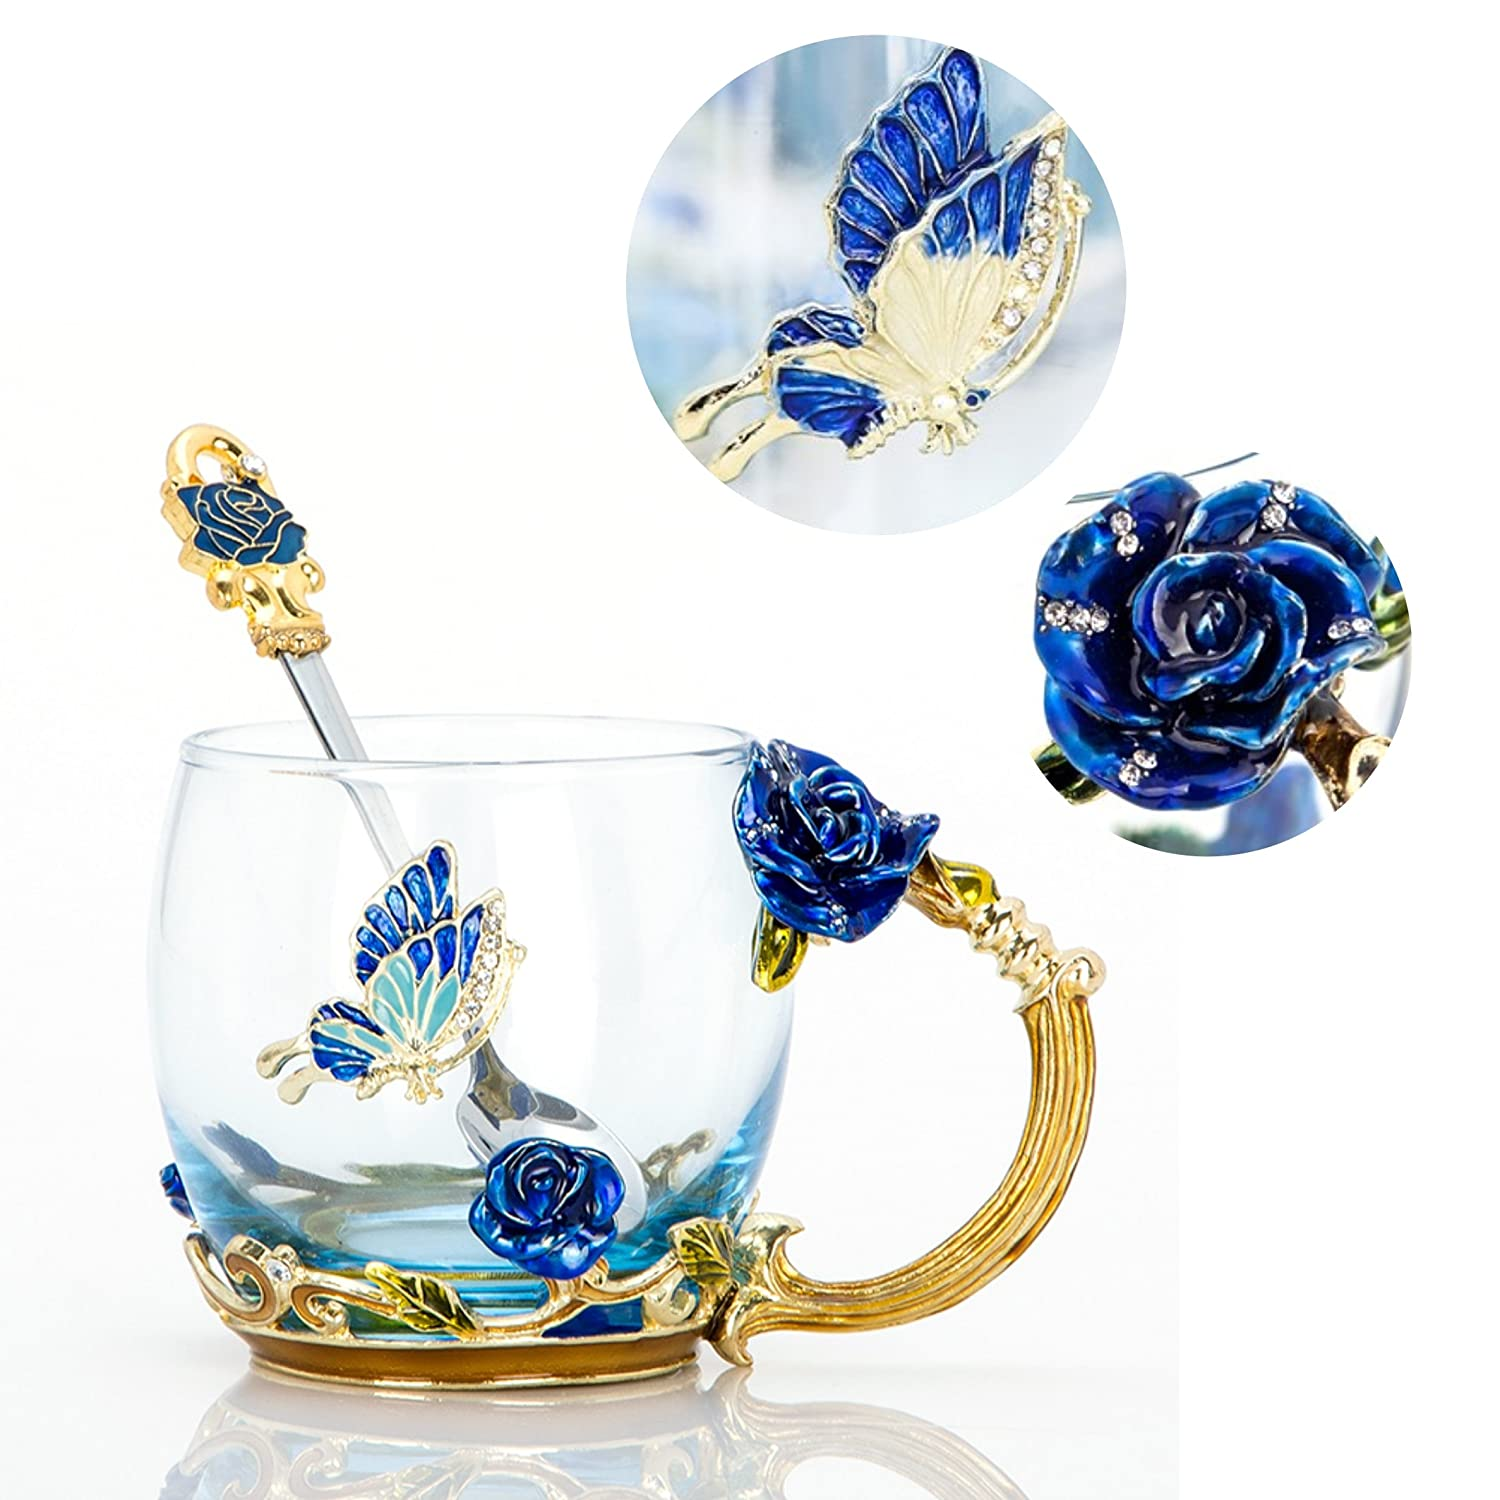 Tea Cup Coffee Mug Cups, 2018 Handmade Butterfly Rose,13 oz (Blue Rose) Ideal for Friend Wedding Anniversary Birthday Presents